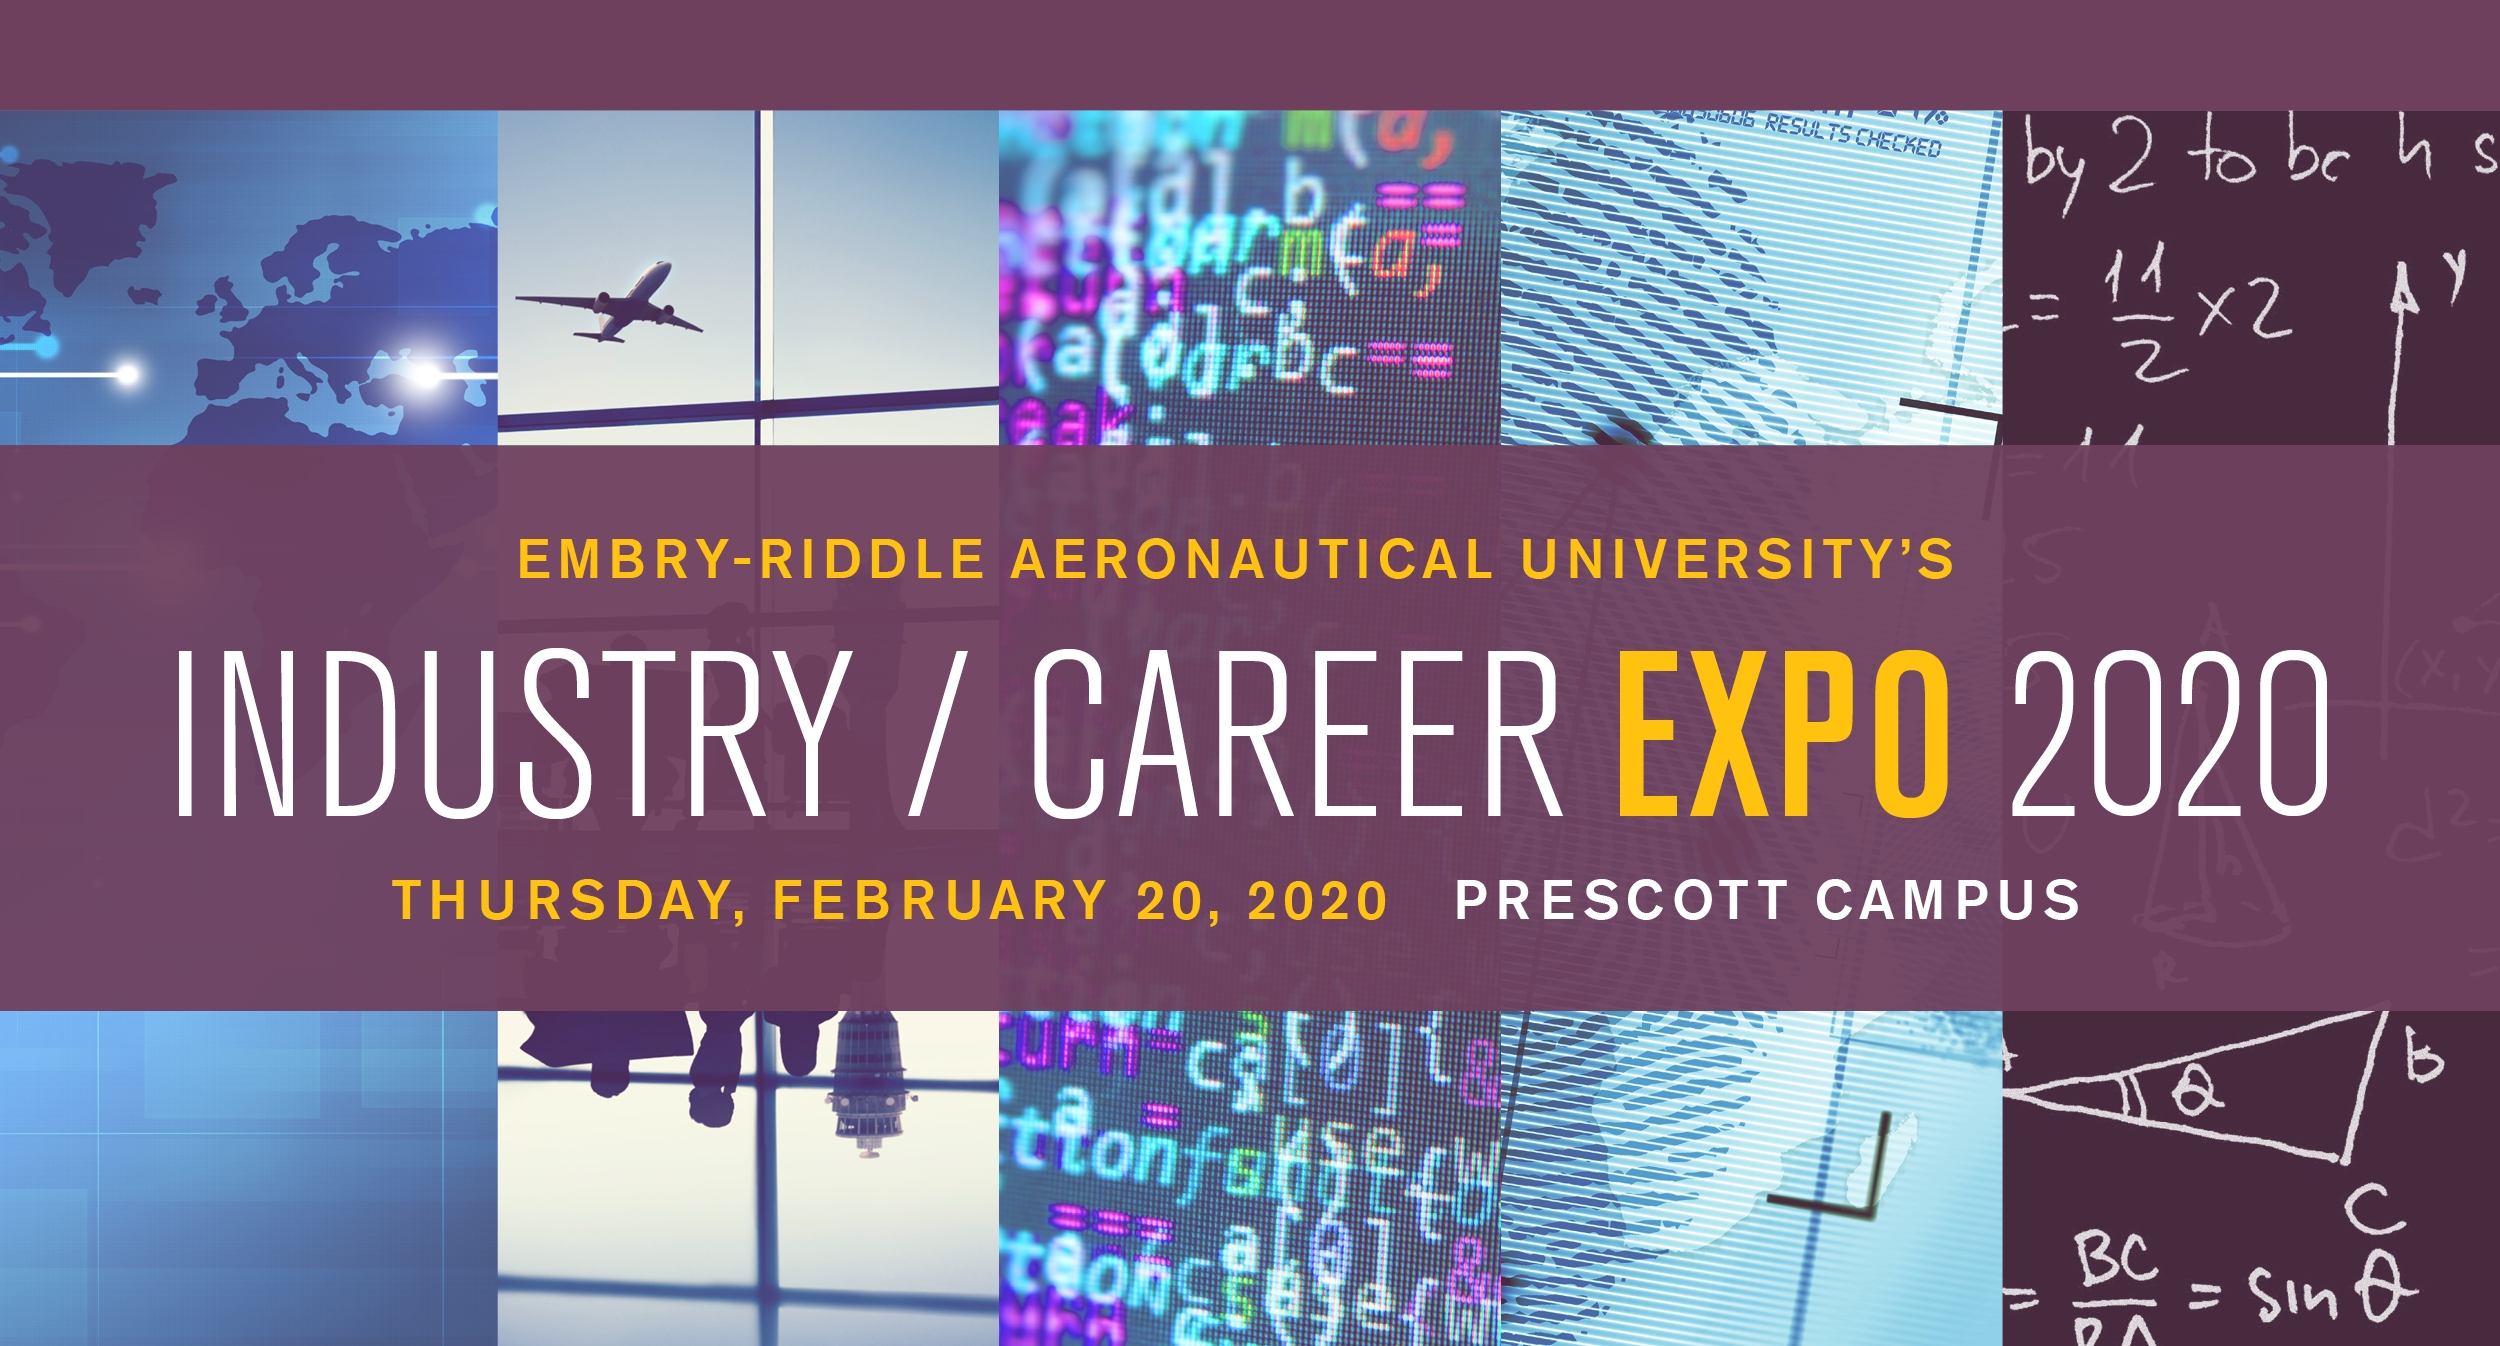 Spring 2020 Expos: Save The Dates - Career Services | Embry